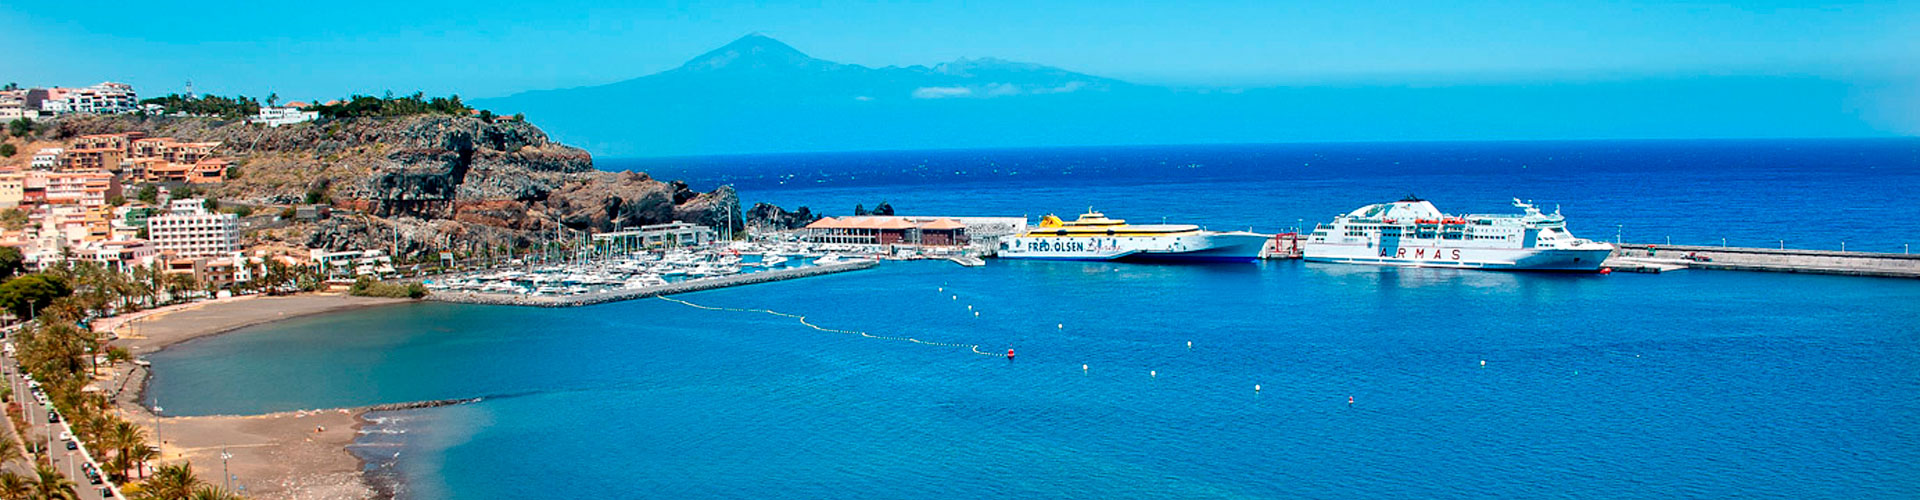 La Gomera, the magic island.